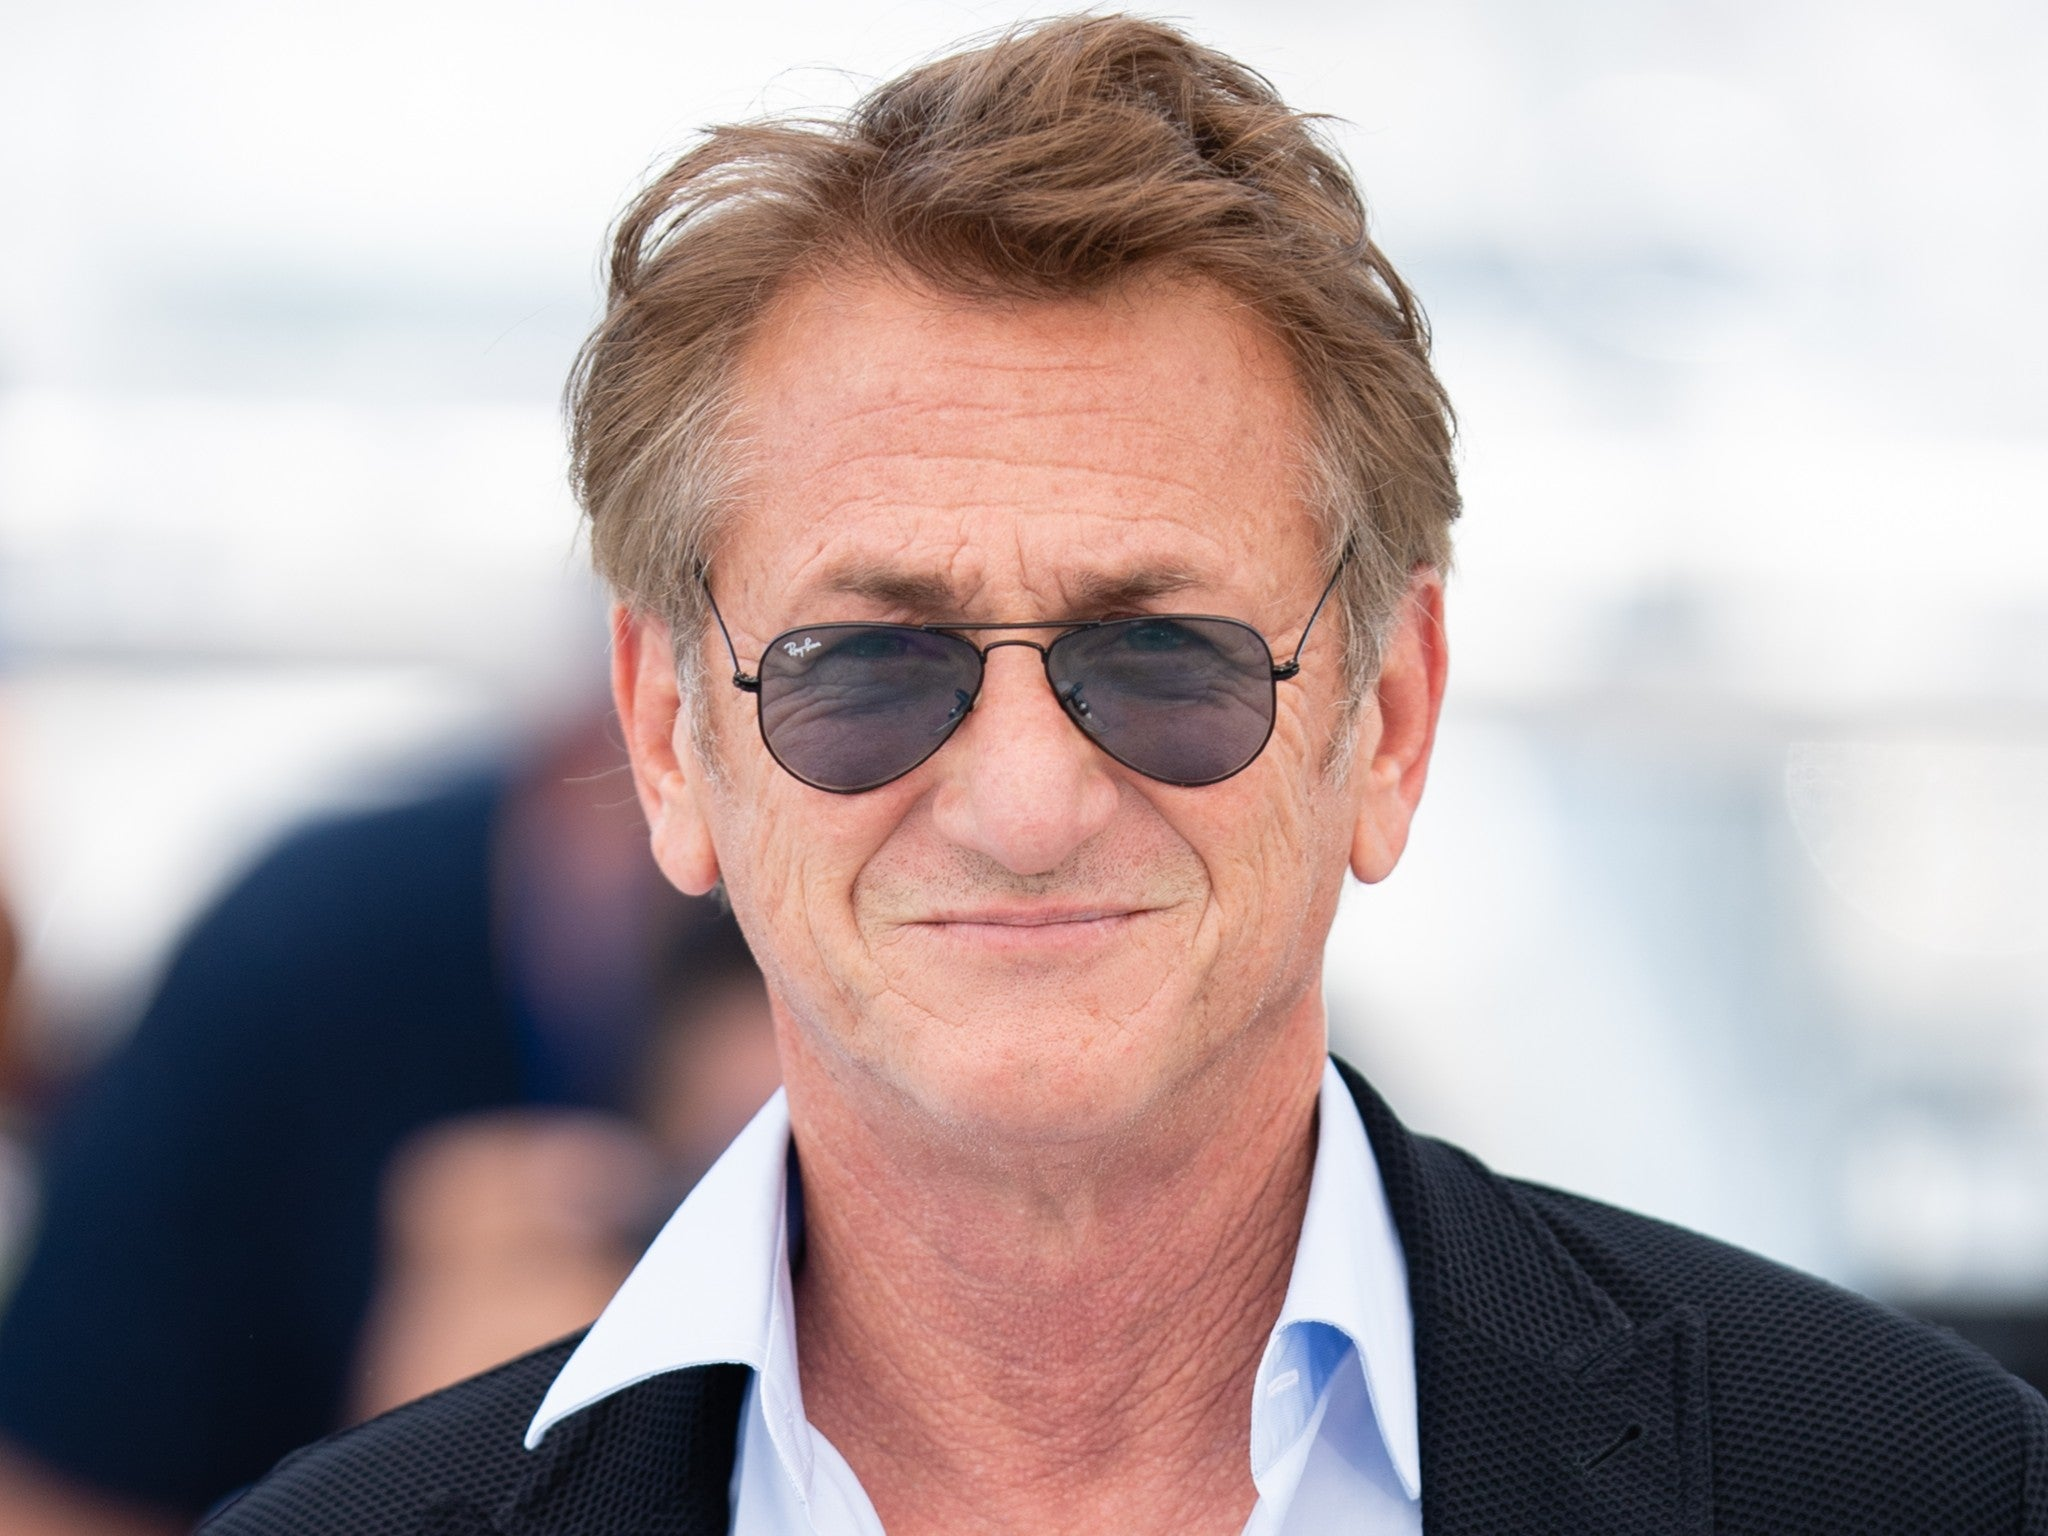 independent.co.uk - Elizabeth Aubrey - Sean Penn says he won't resuming filming on latest TV show until all staff are vaccinated